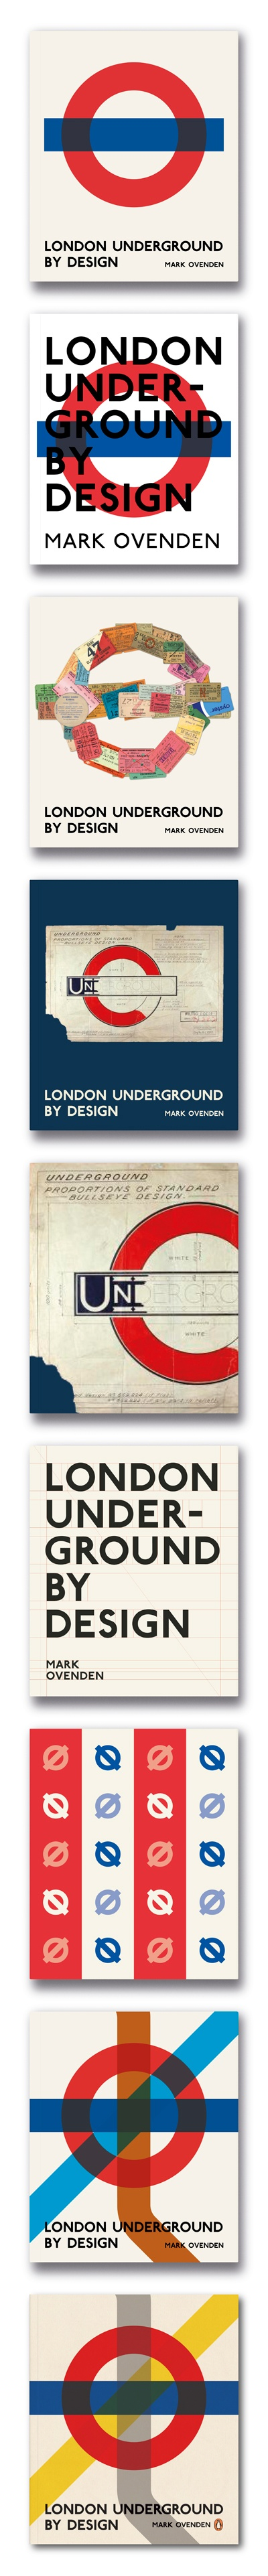 Had a lot of fun designing a cover for London Underground by Design. Here's a few work-in-progress shots.